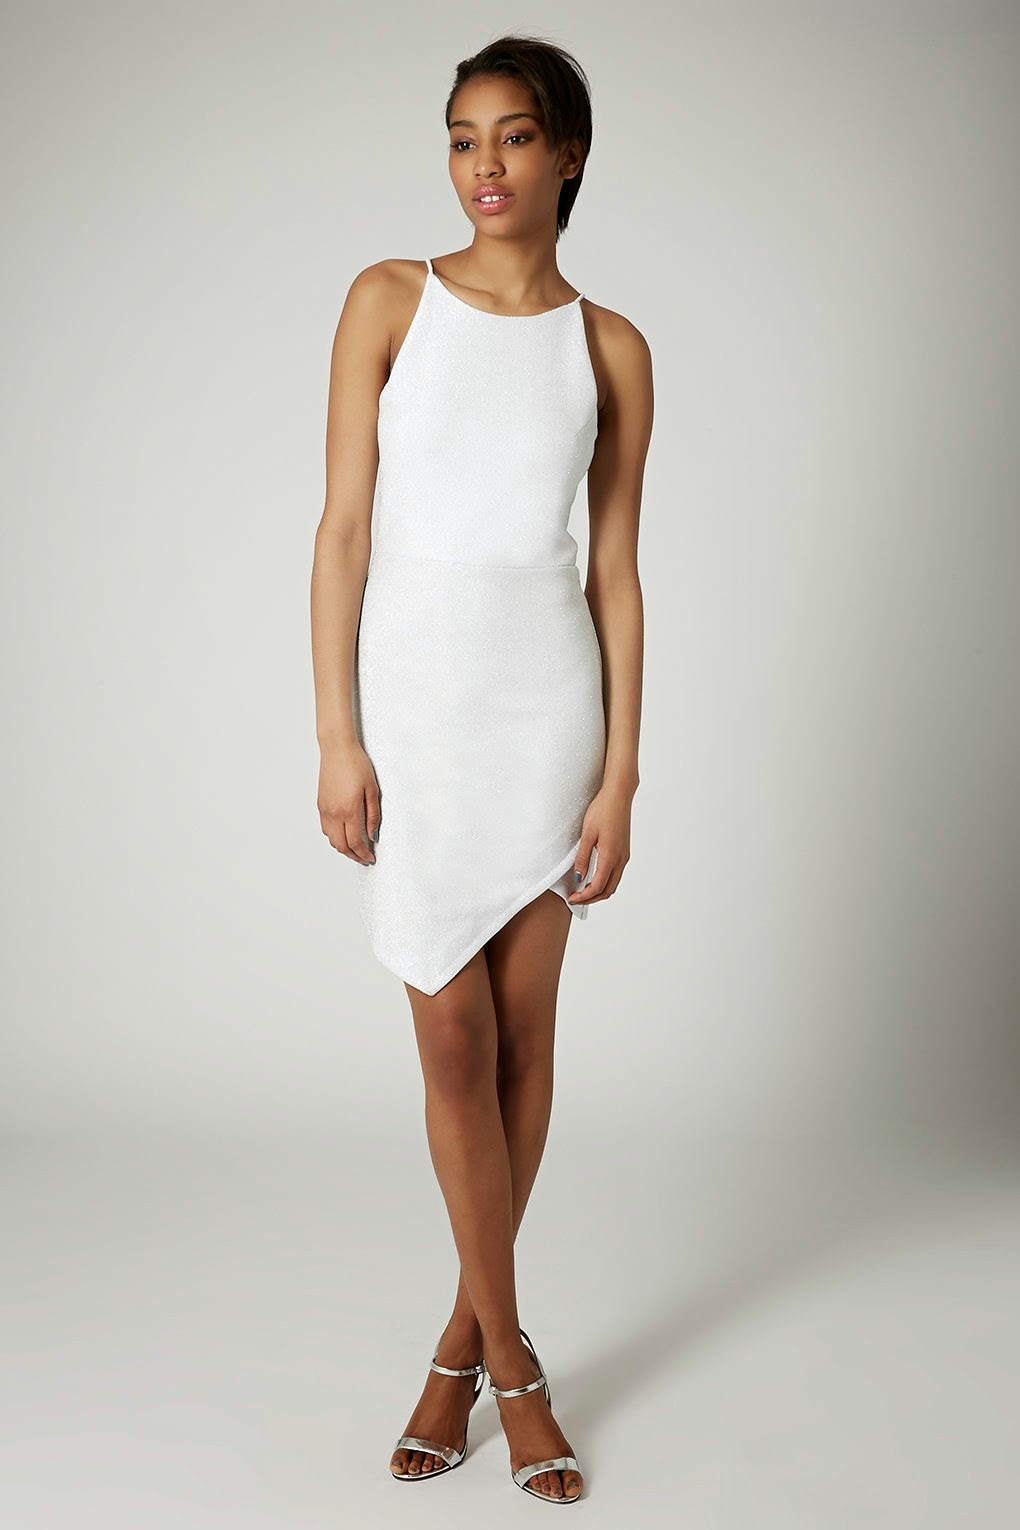 white topshop dress, strappy white dress,